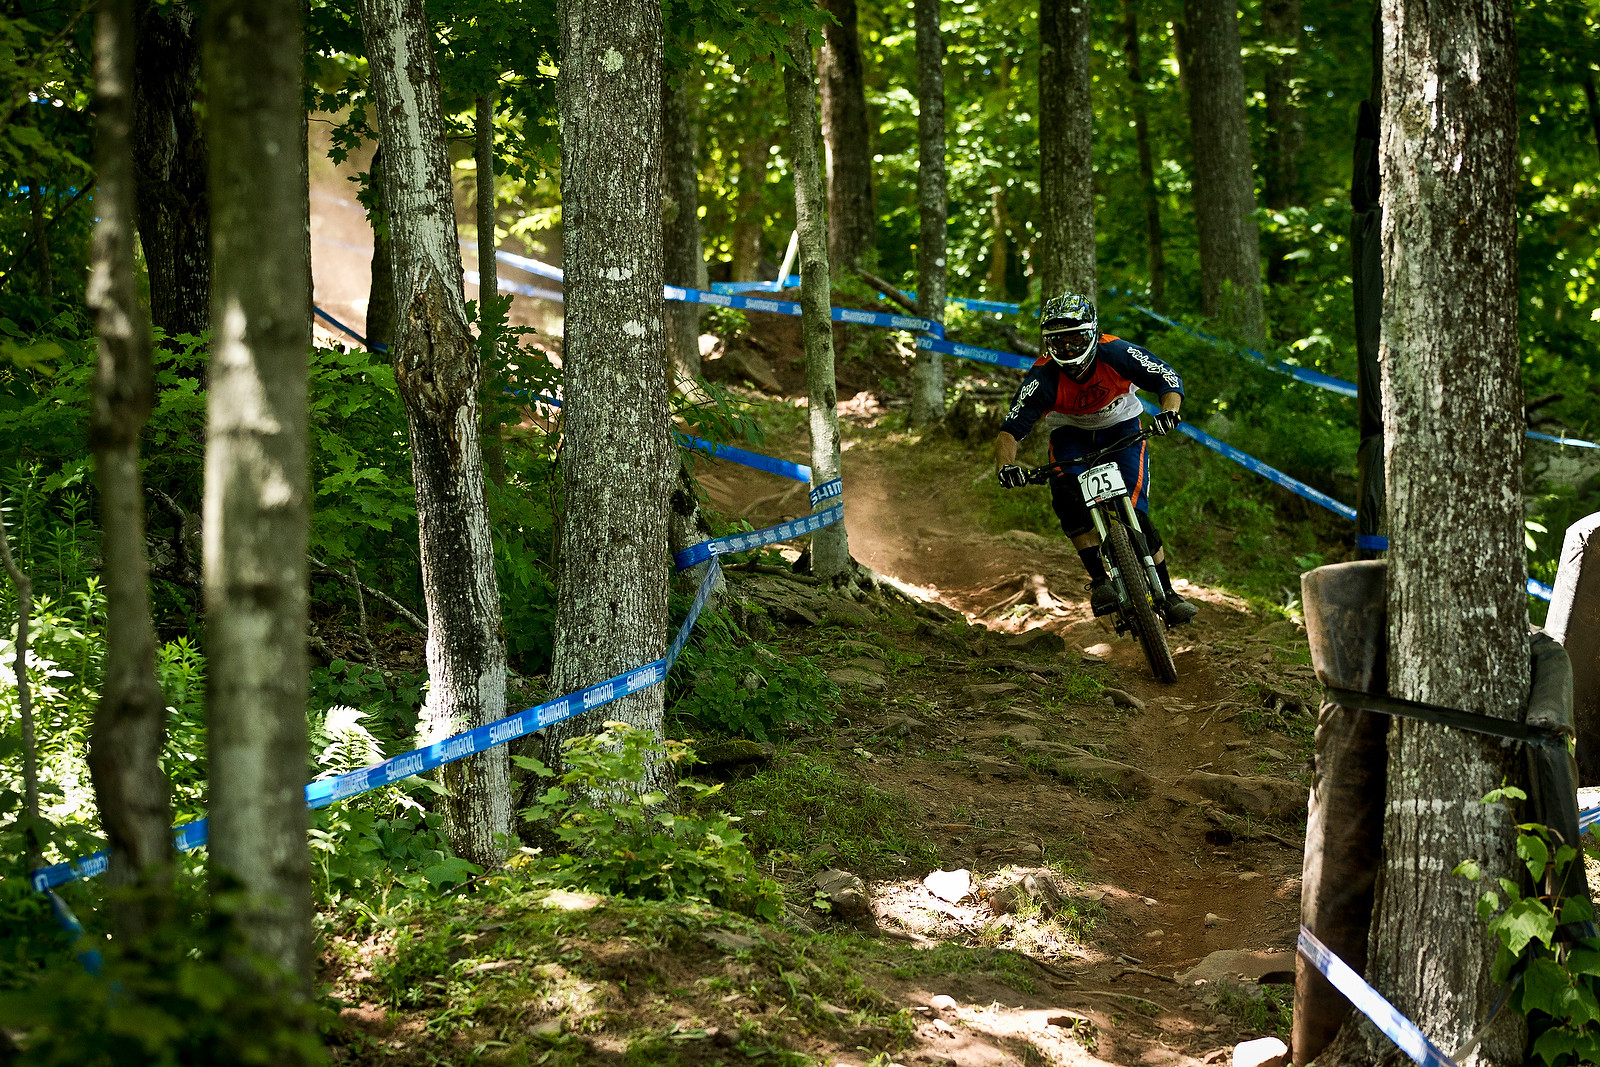 Luke Strobel, Windham World Cup DH Practice - 2012 UCI World Cup, Windham, New York Day 2 - Mountain Biking Pictures - Vital MTB